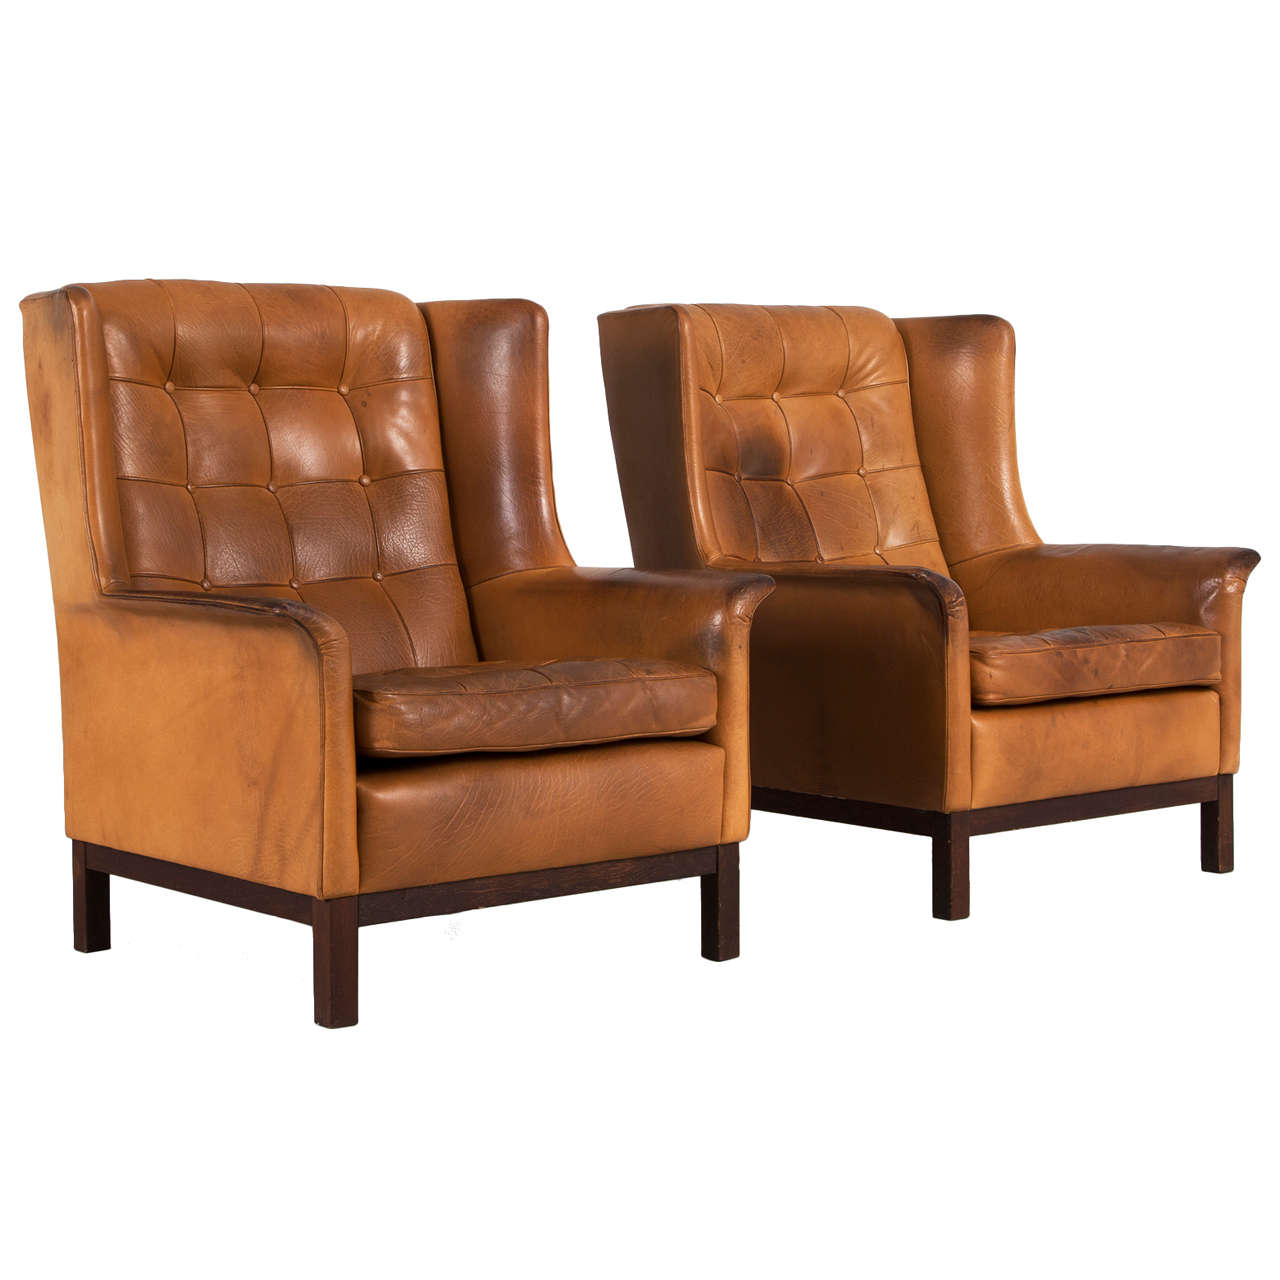 Delicieux Arne Norell Set Of Two Highback Lounge Chairs In Cognac Leather For Sale